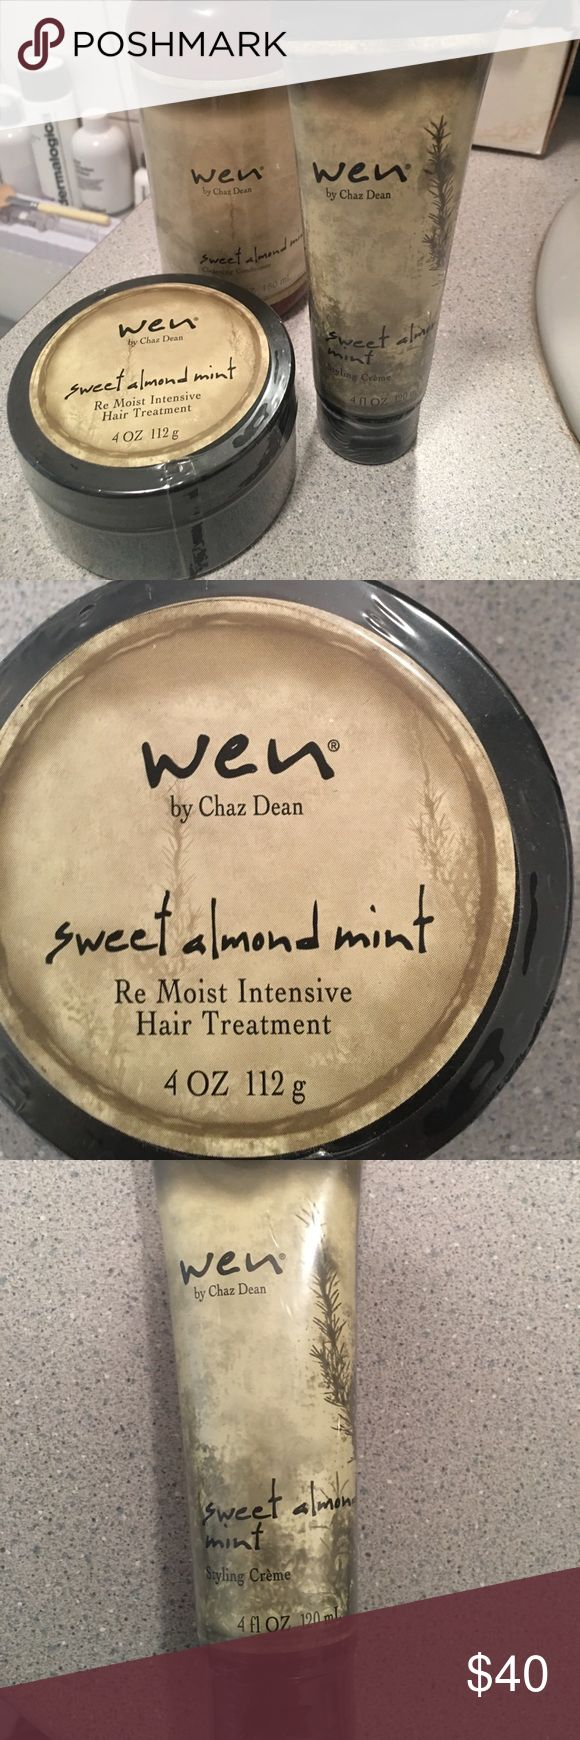 Wen haircare 3 products by Wen hair care products. One is a sweet almond mint intensive hair treatment, The other is a sweet almond mint styling cream, and the big bottle is the Wen sweet almond mint cleansing conditioner. Great products, I love ❤️ them! 💛 All brand new unopened product👍 Wen Makeup